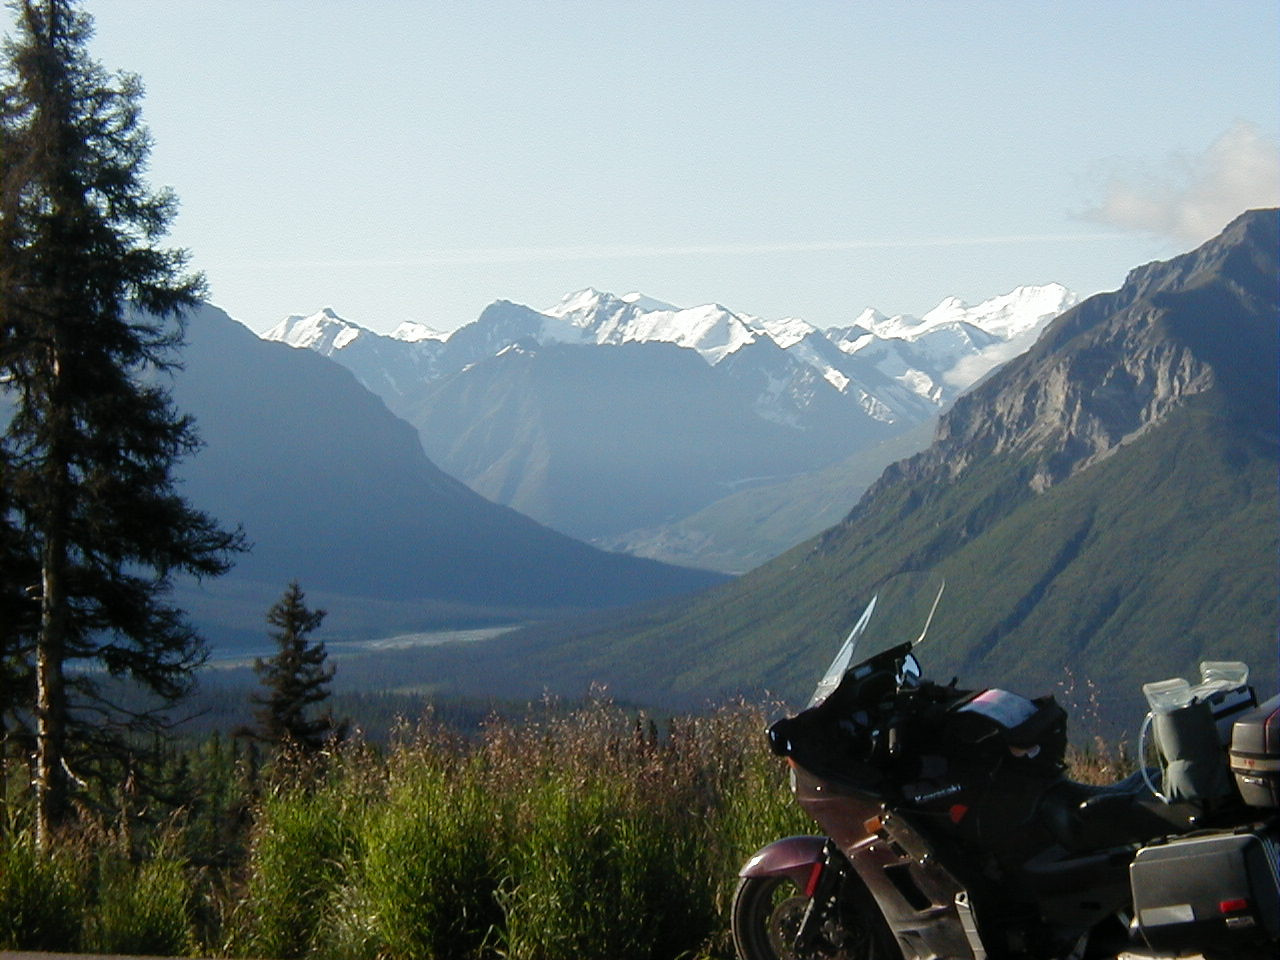 The valley of the South Fork of the Matanuska River - seen from Mile 116 of the Glenn Hwy.